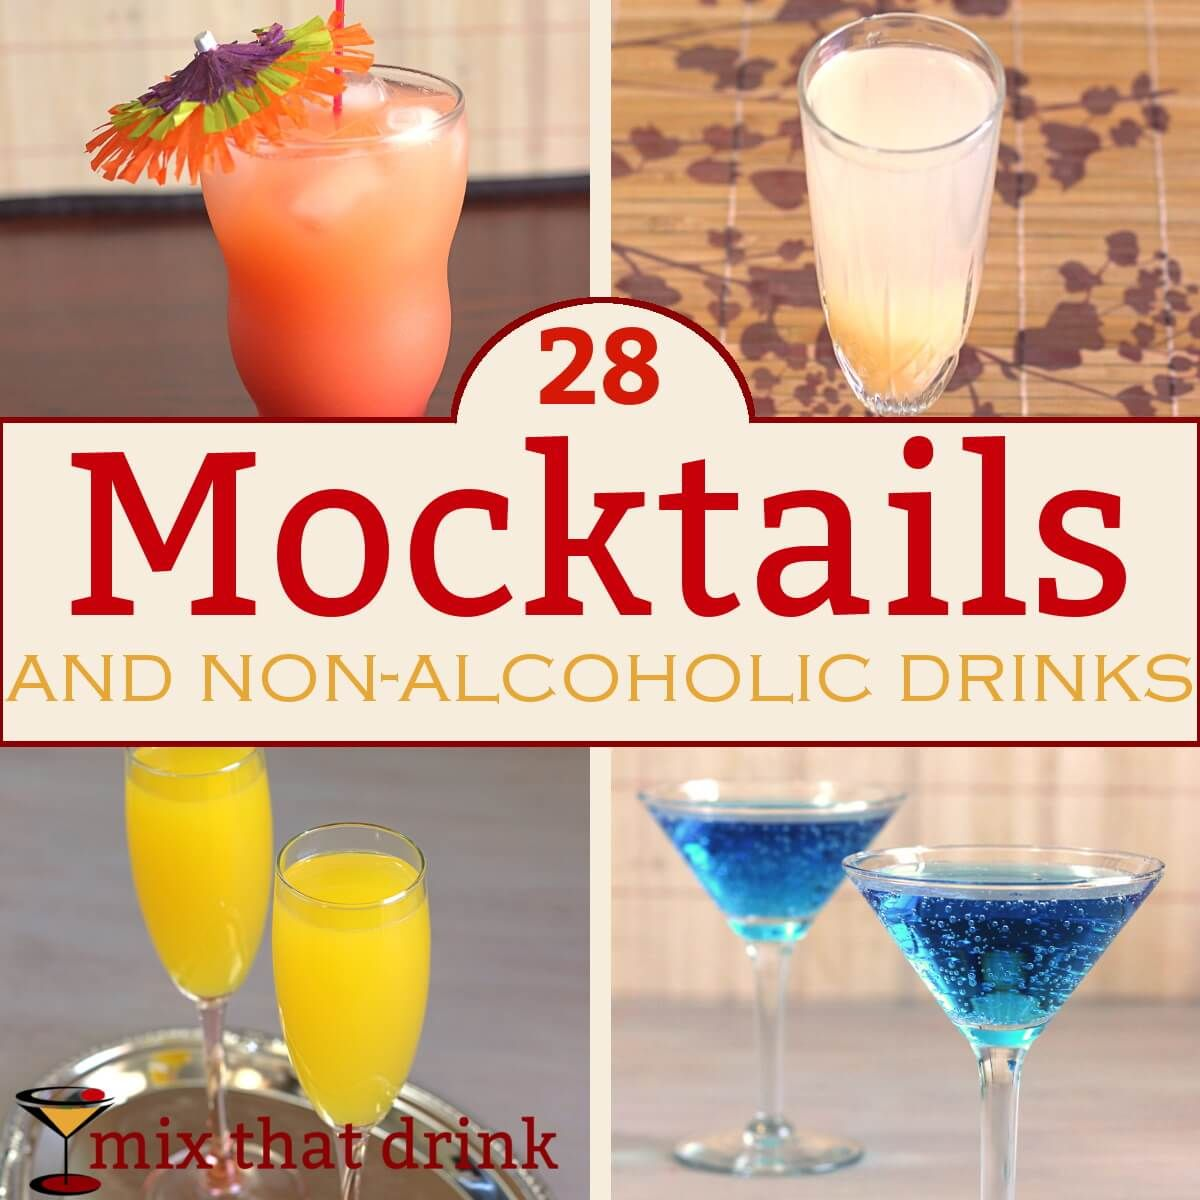 27 Mocktails And Non-alcoholic Cocktails